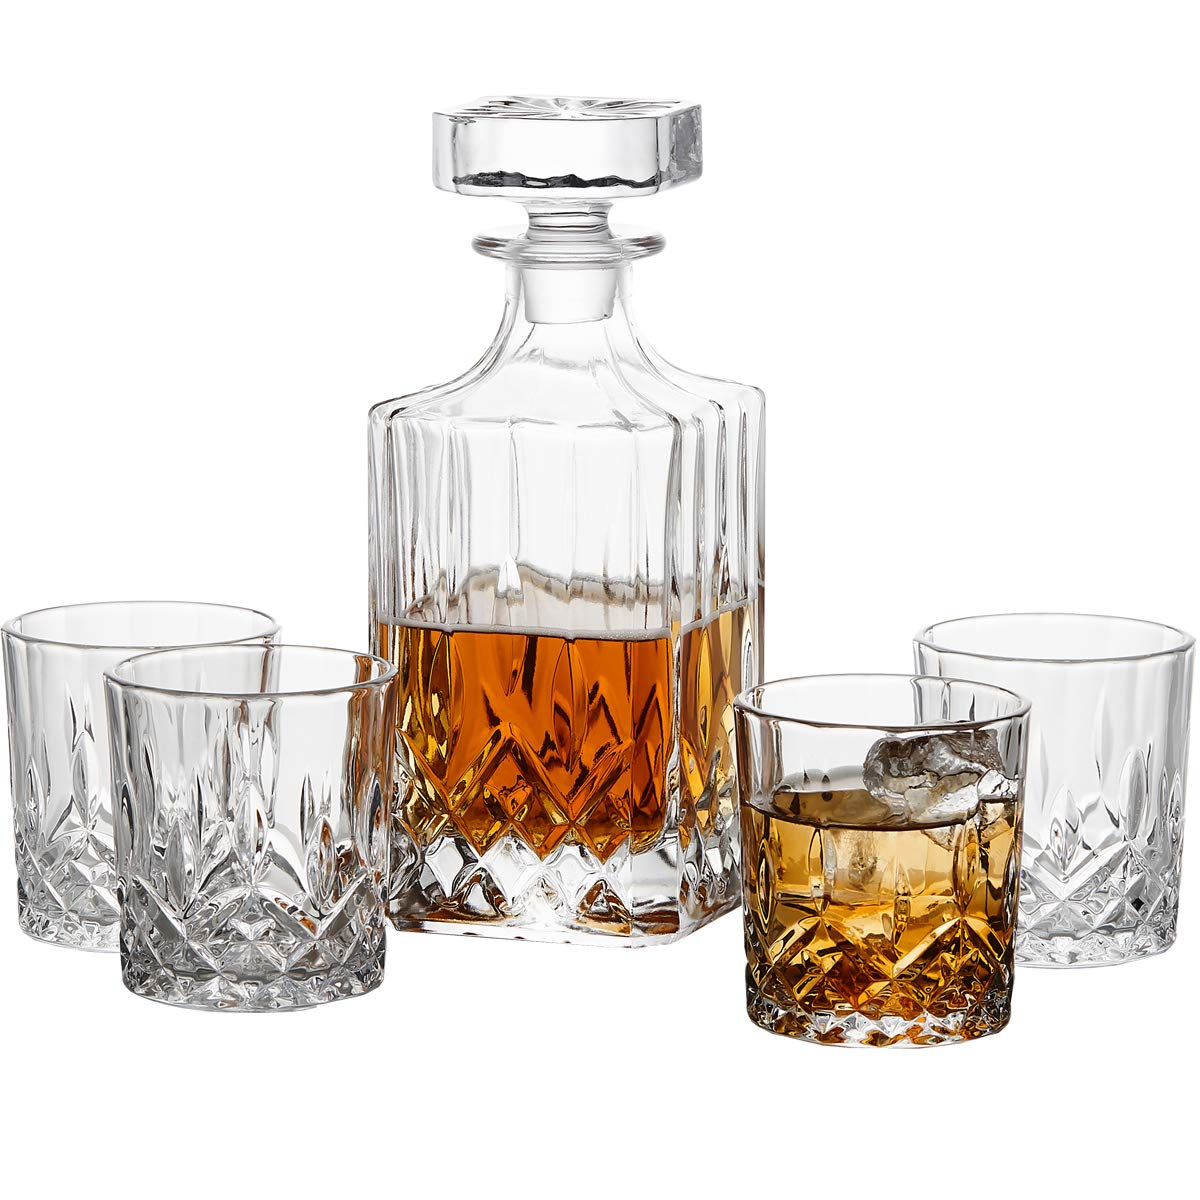 GoodGlassware Whiskey Decanter and Glasses (5 Piece Set) - Elegant Liquor Carafe with Ornate Solid Glass Stopper and 4 Matching Whisky Tumblers - Lead-Free and Dishwasher Safe by Vintorio